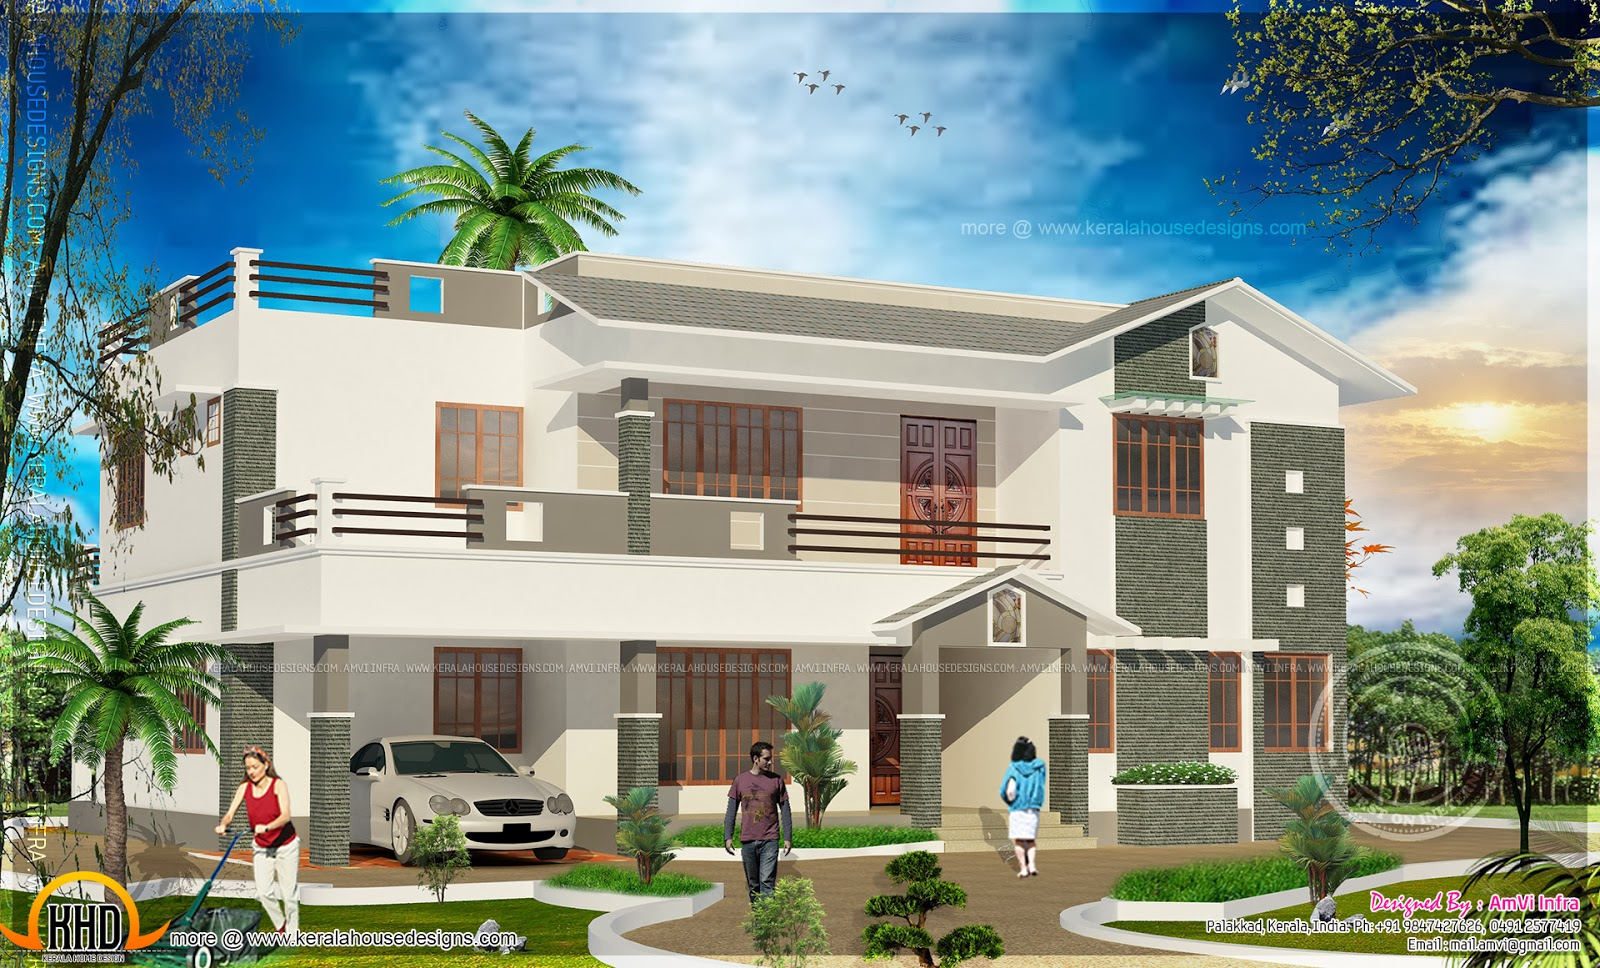 5 bedroom house elevation with floor plan - Kerala home ...